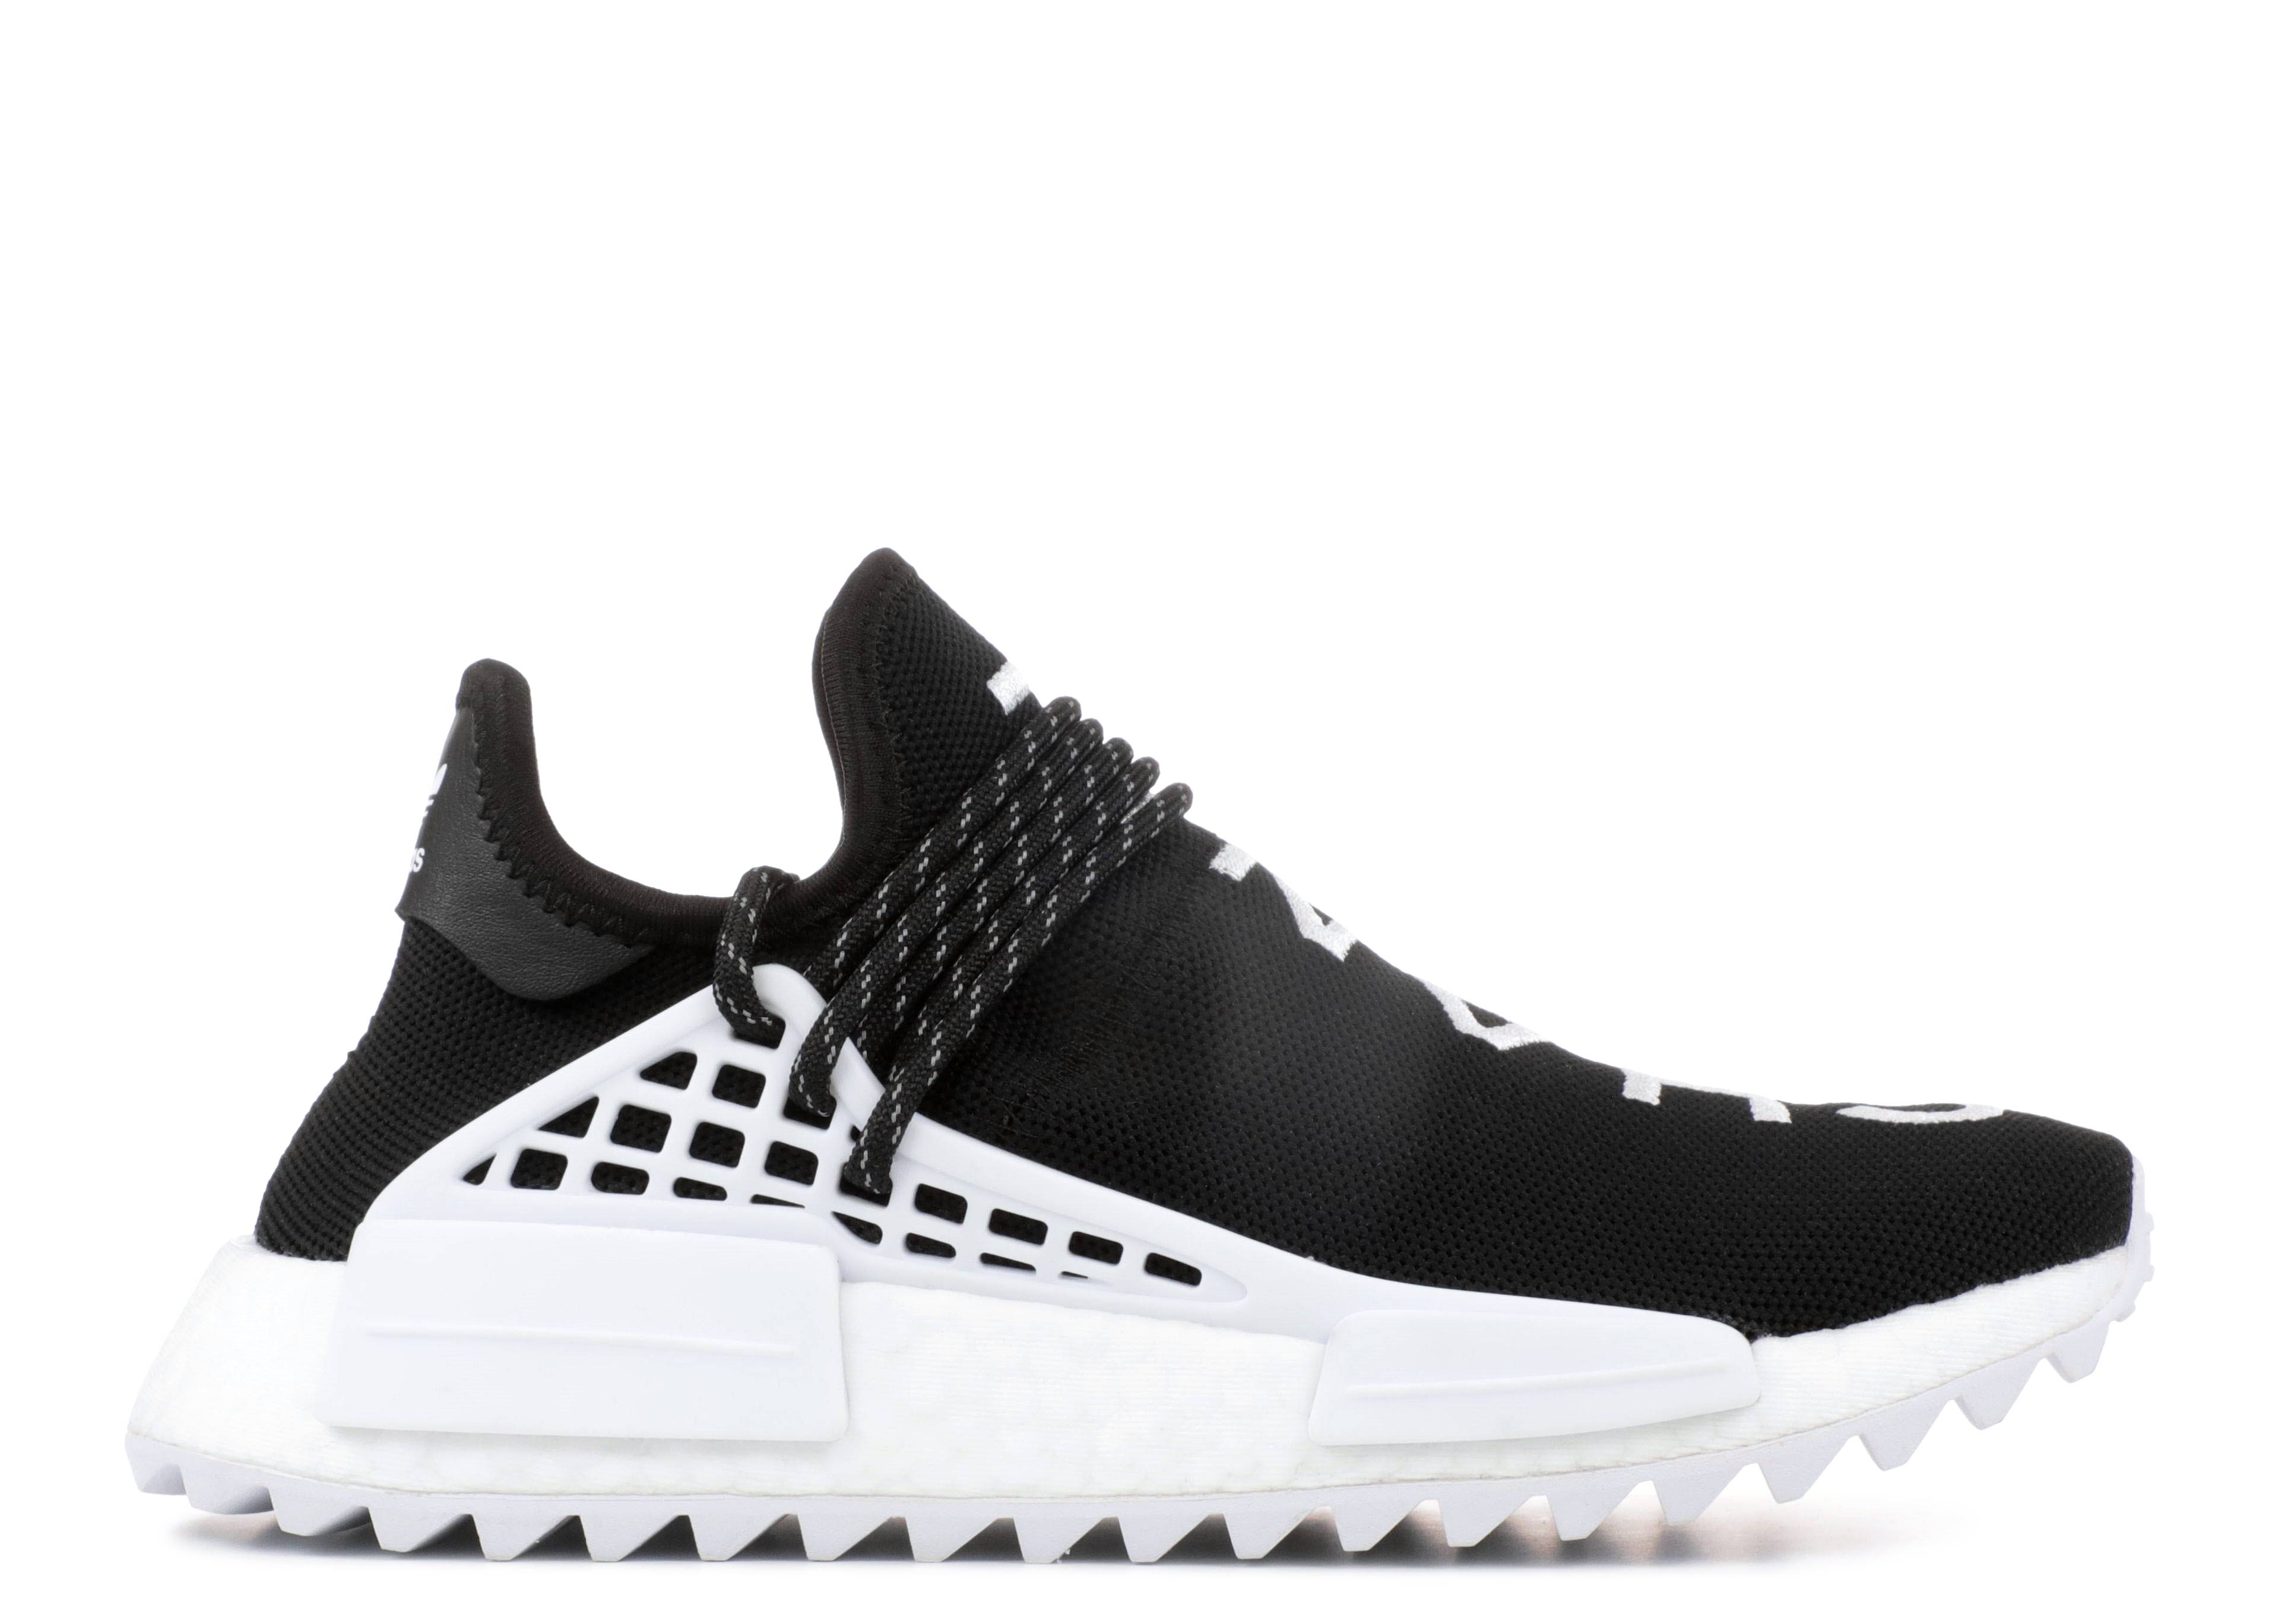 Equivalente rodillo cáncer  Pharrell X Chanel X NMD Human Race Trail 'Chanel' - Adidas - D97921 - core  black/running white | Flight Club